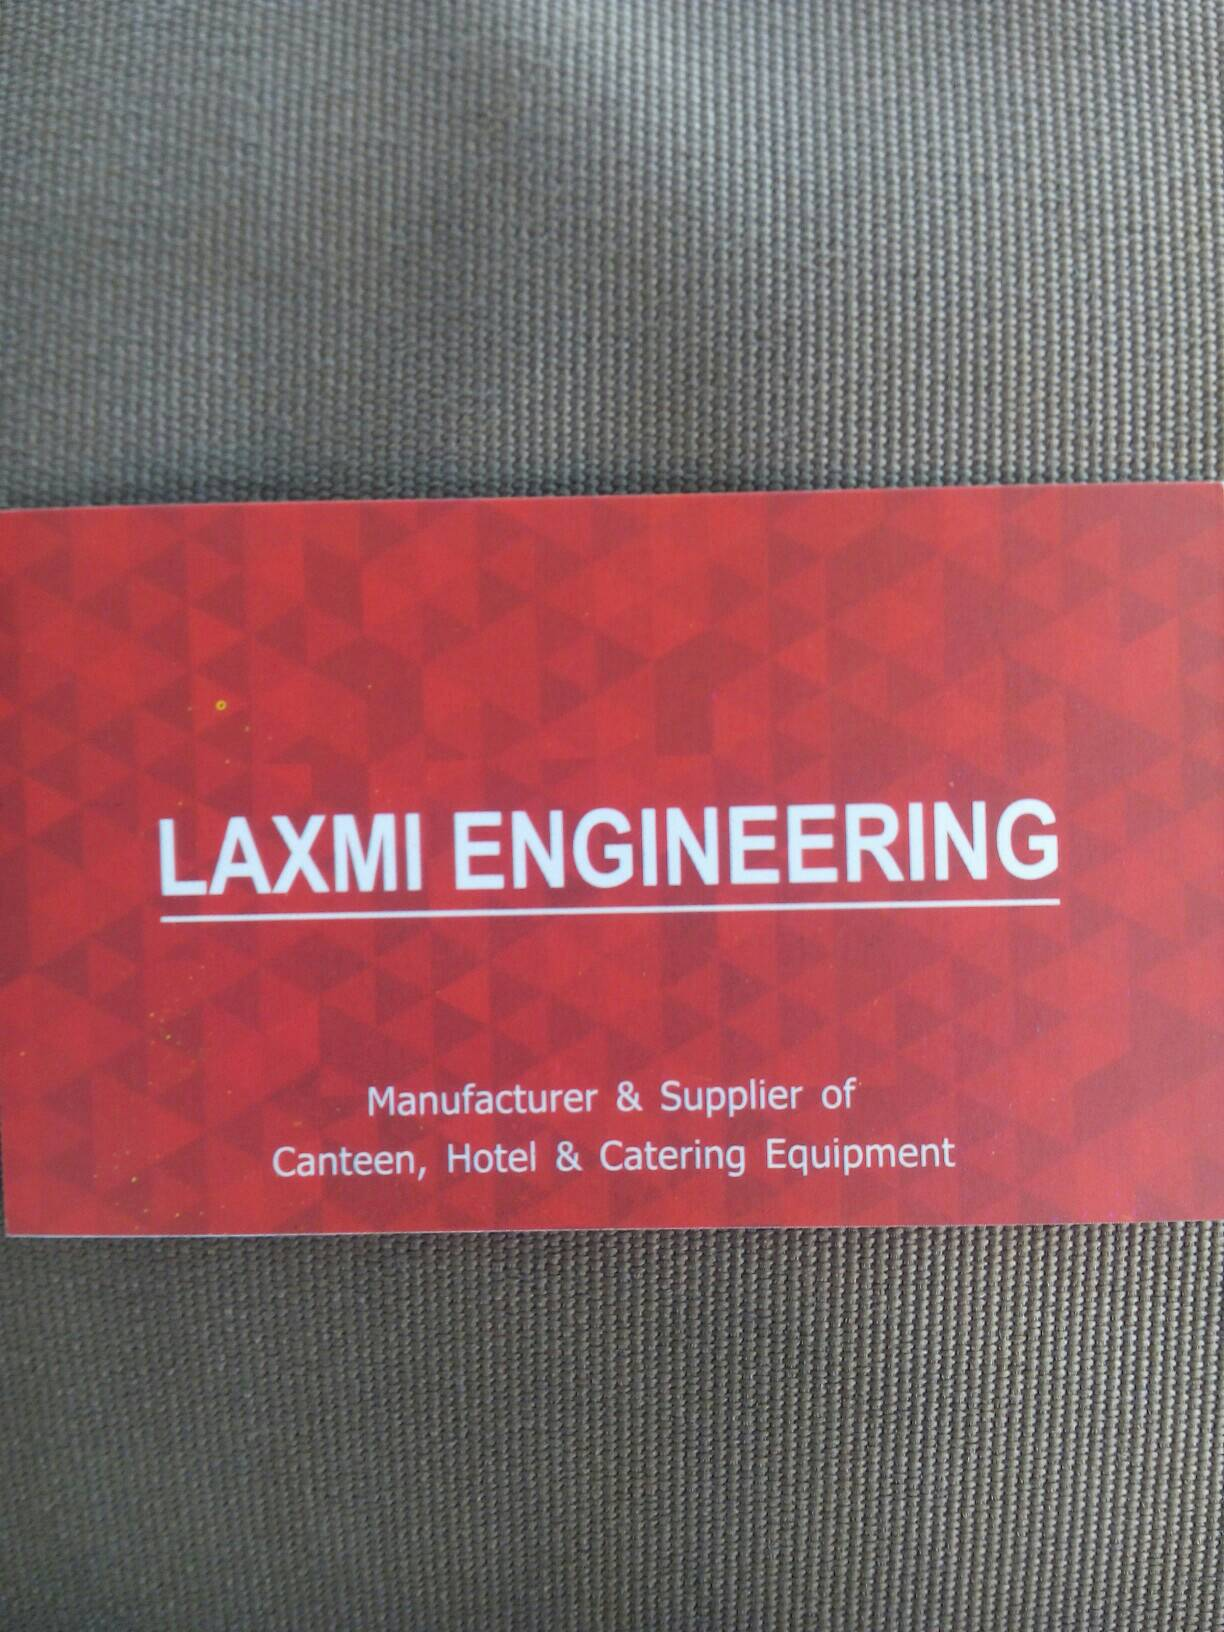 Laxmi Engineering